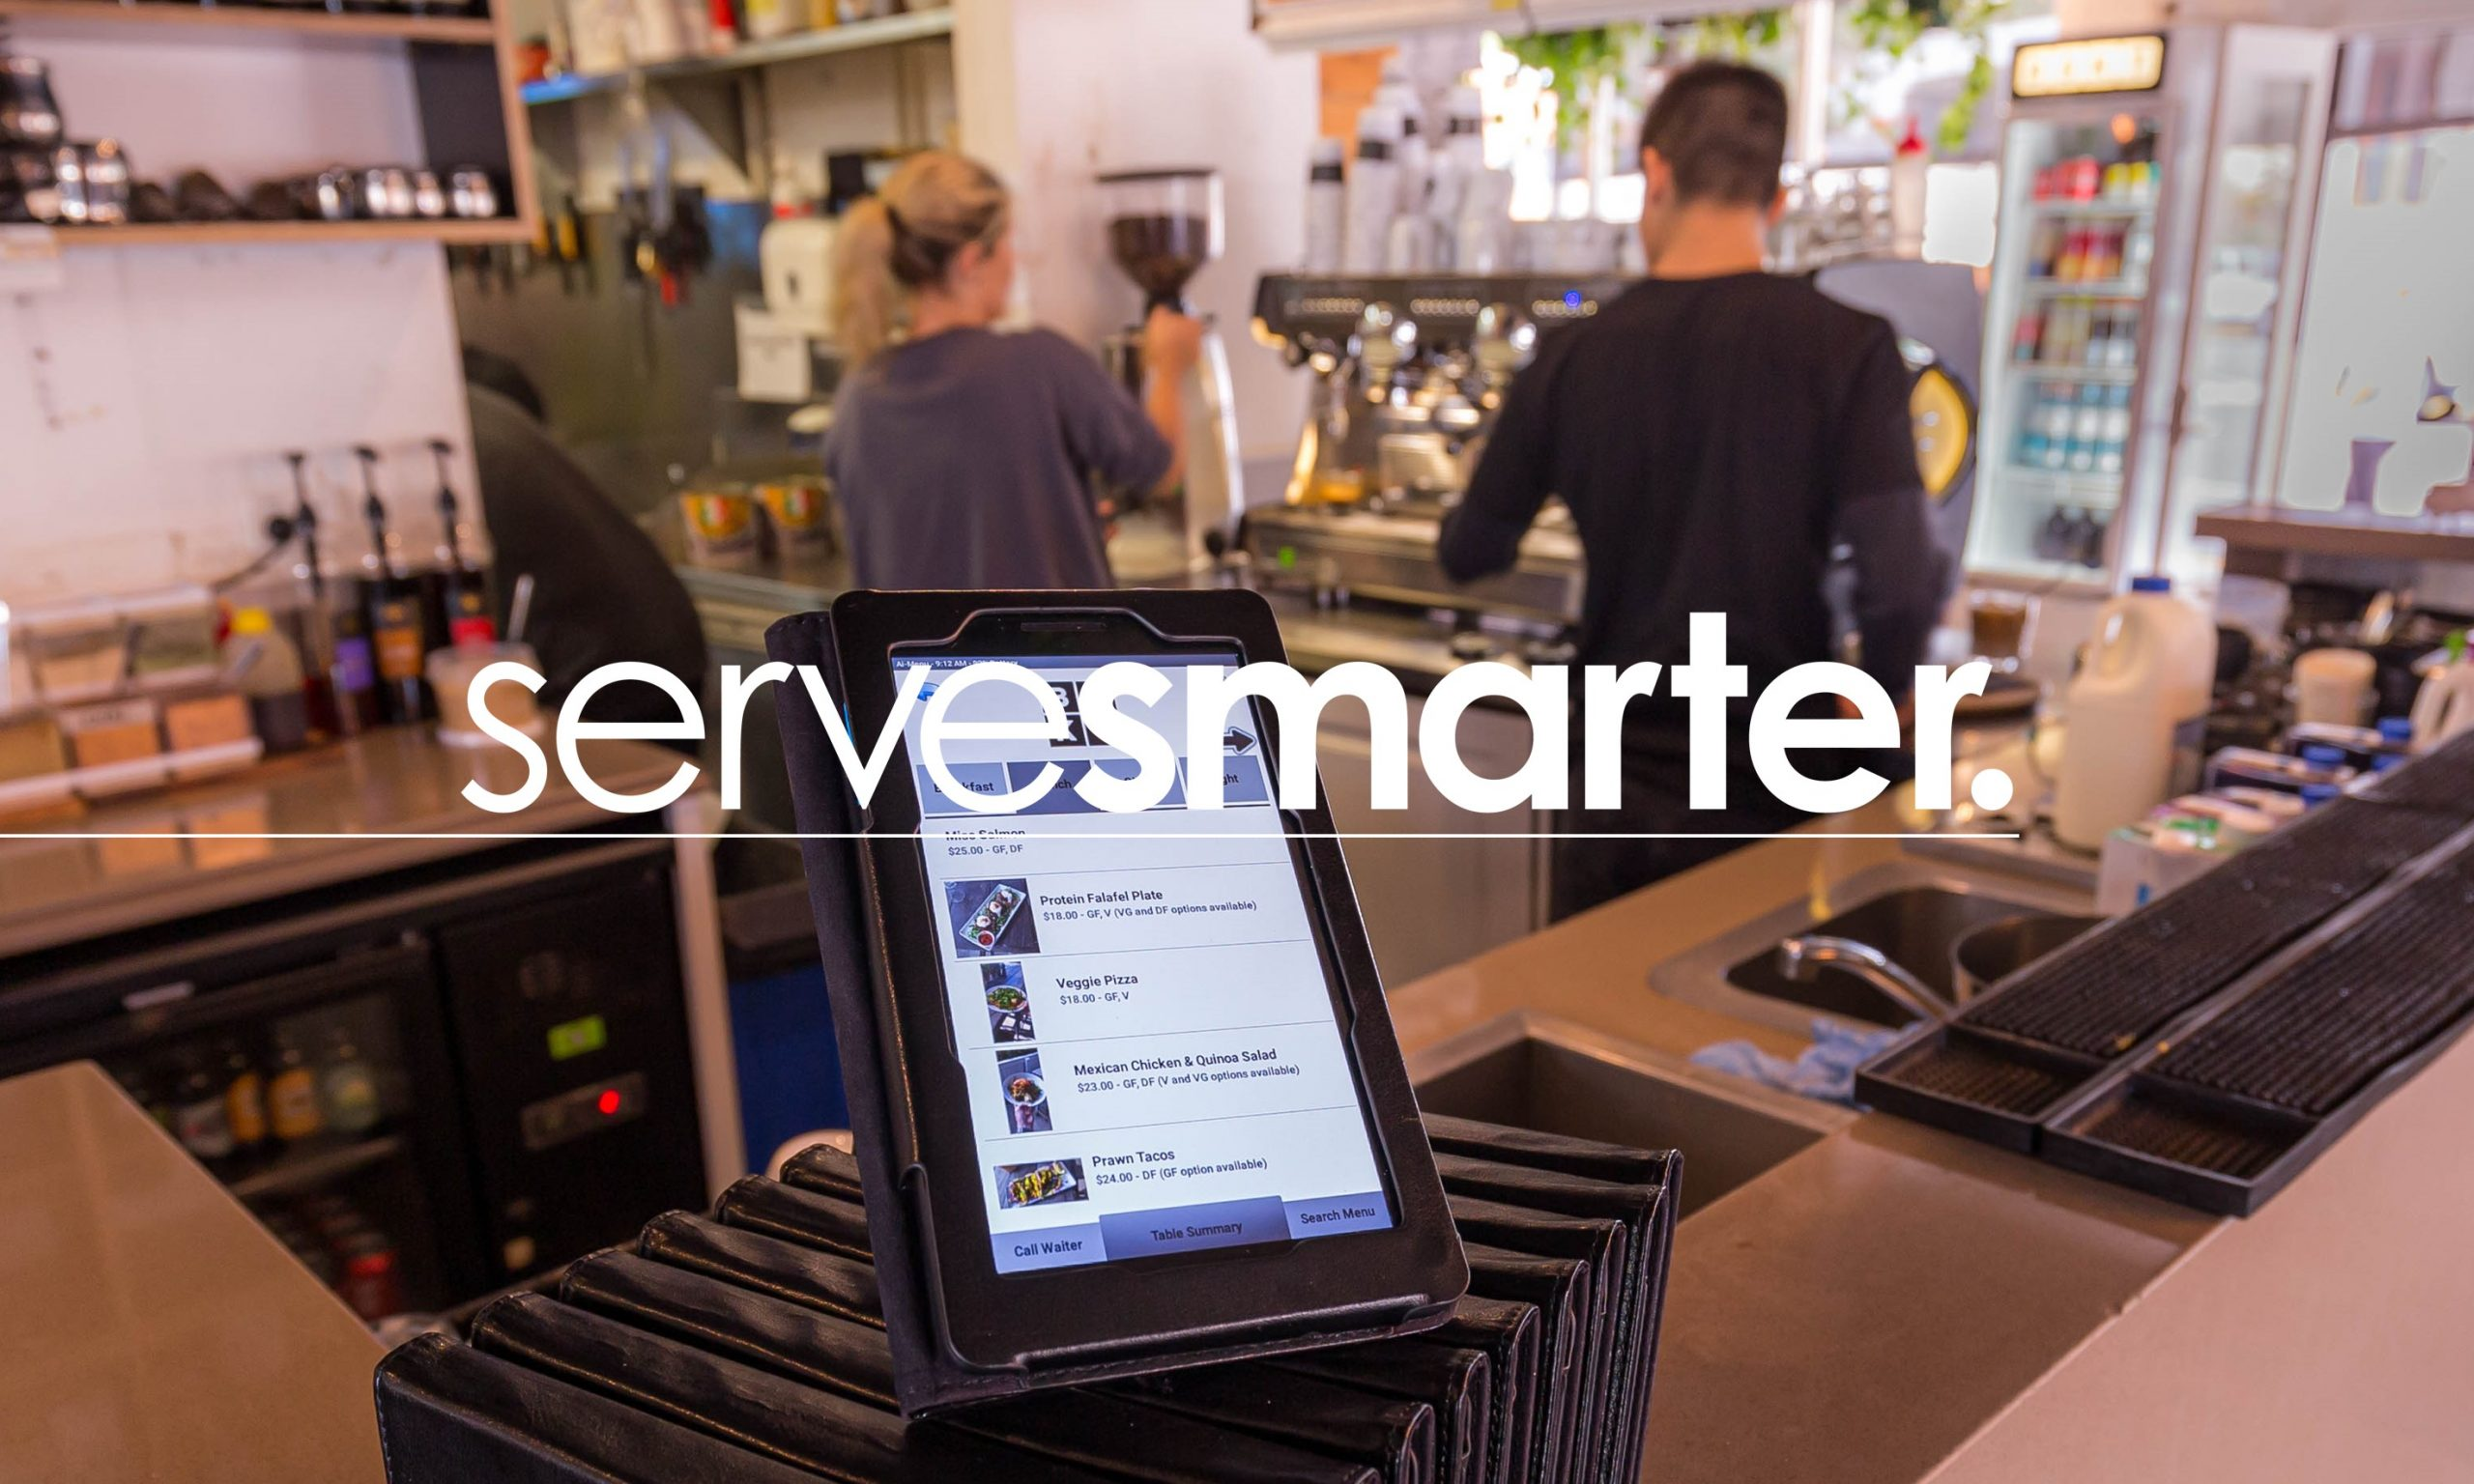 Ai-Menu is a leading innovator in hospitality technology, with solutions for online ordering, digital menus and self-ordering kiosks #servesmarter